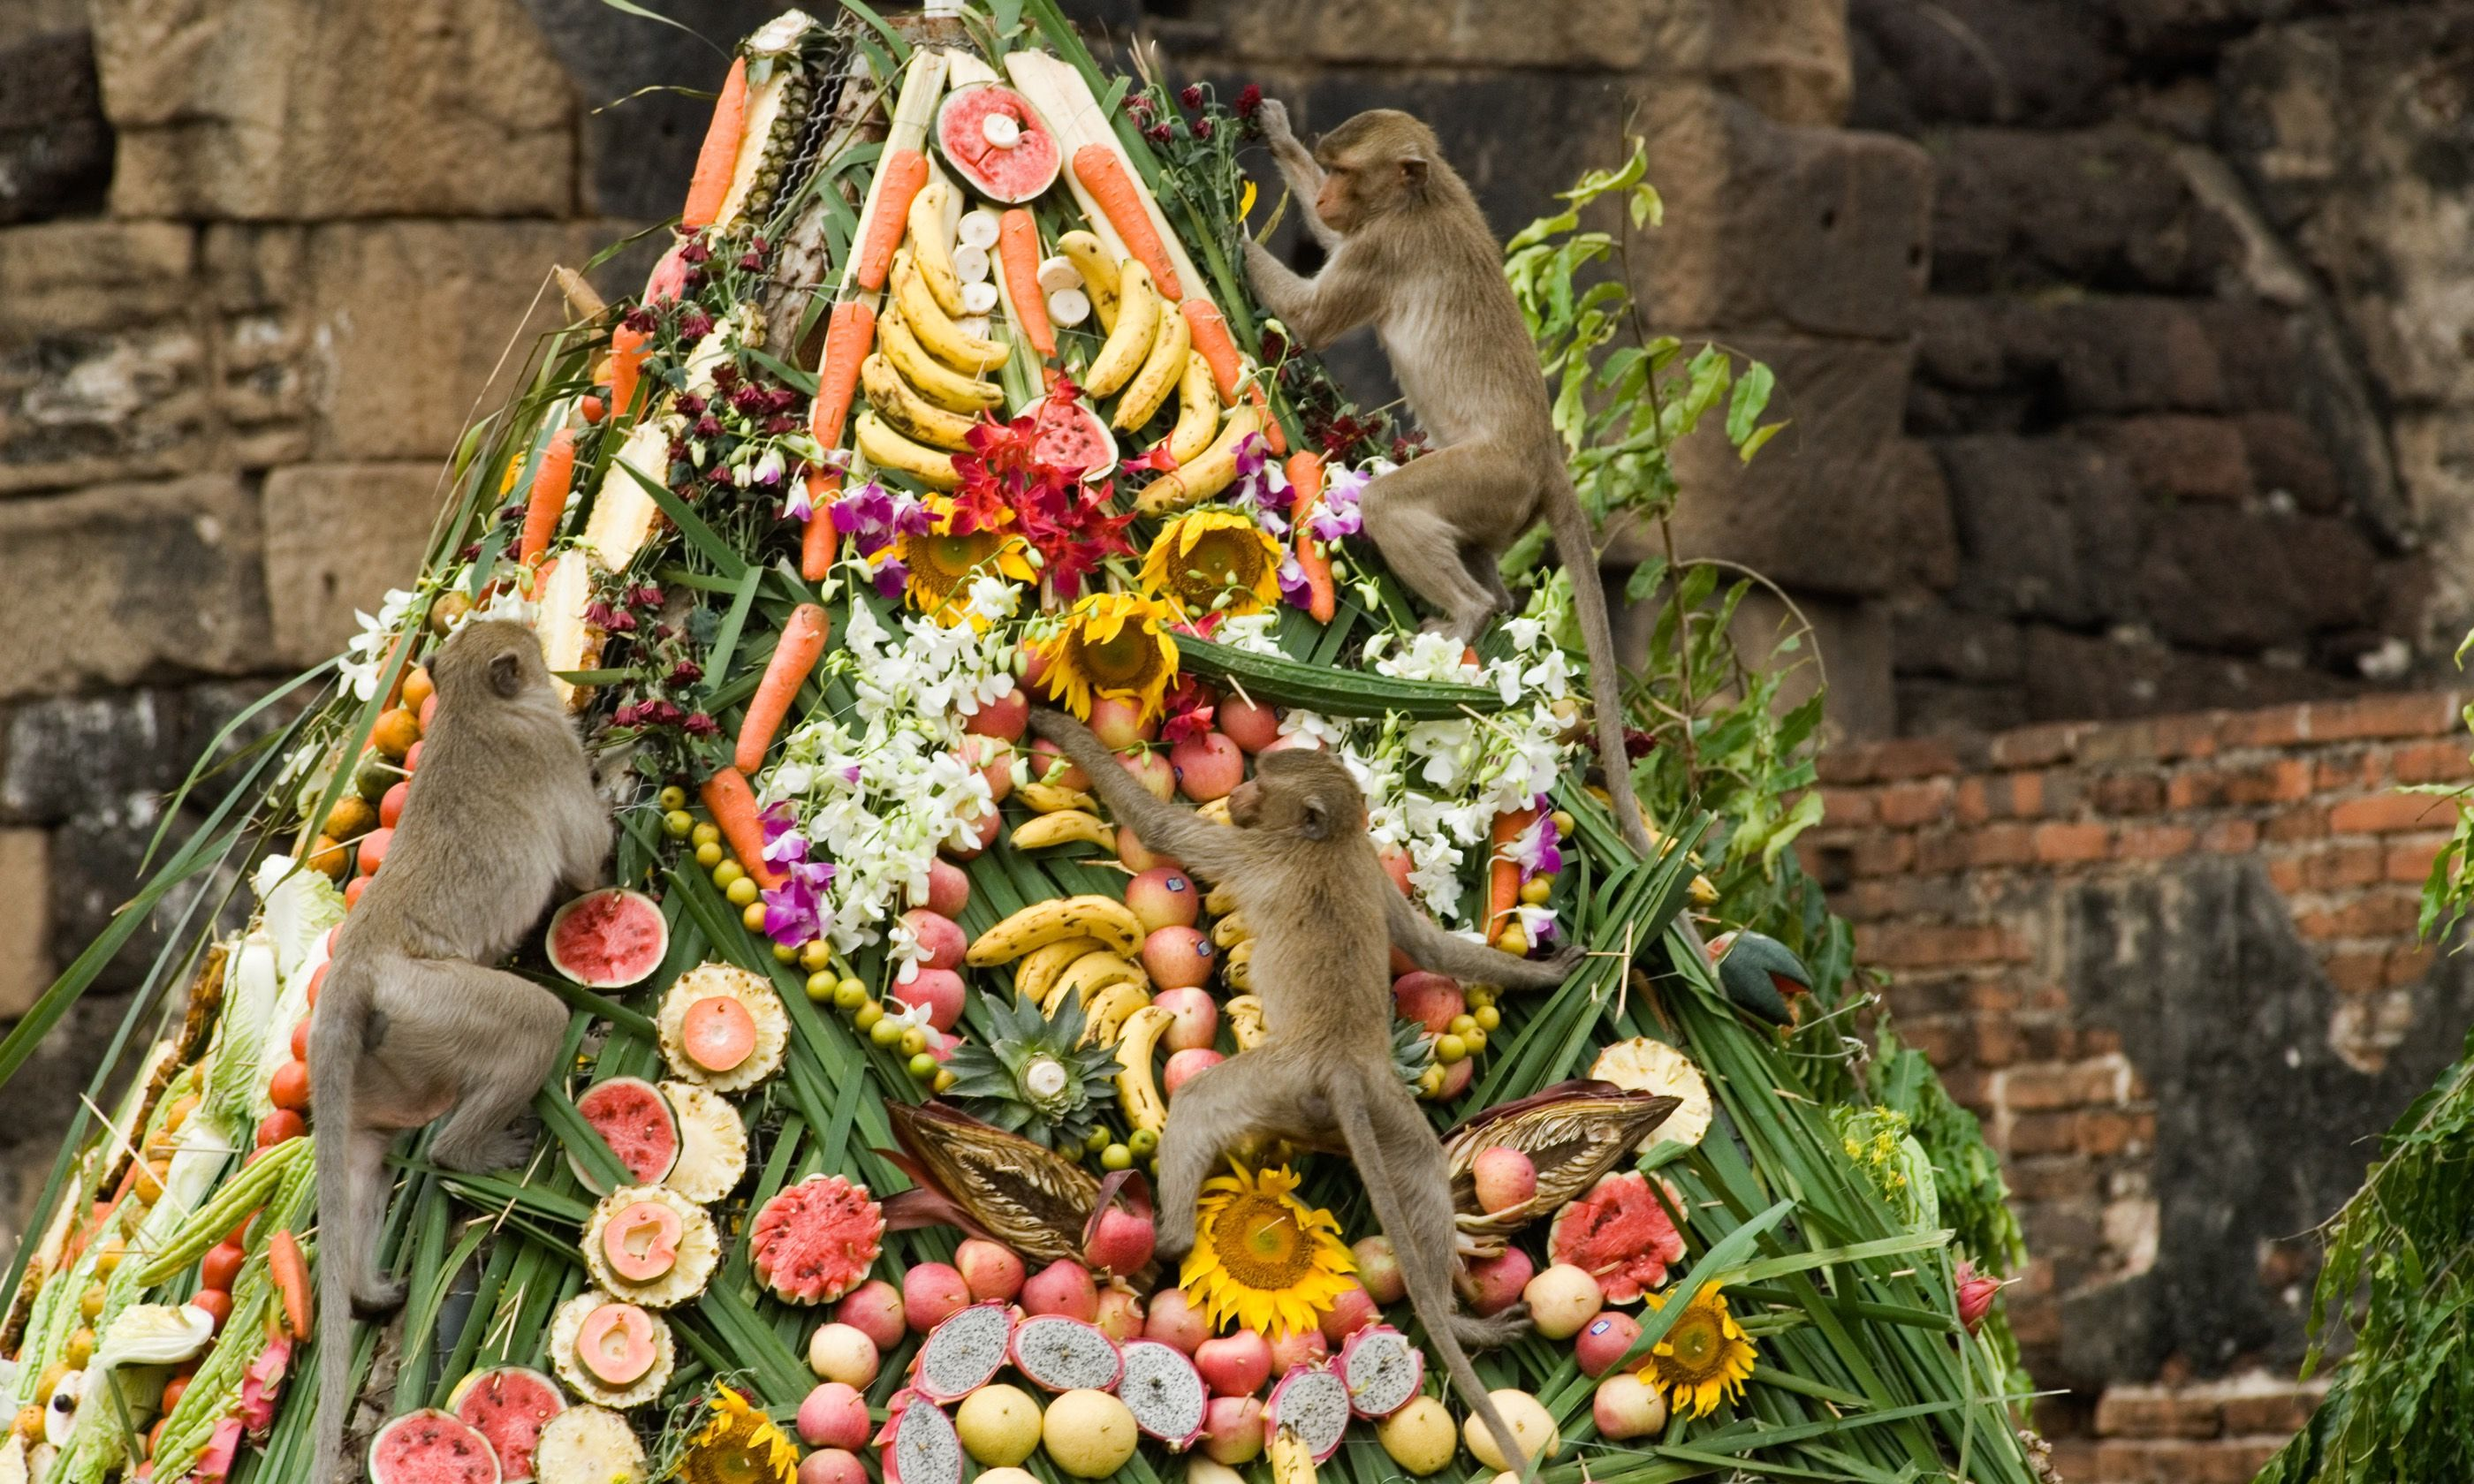 Monkeys clambering on tower of food (Shutterstock.com)